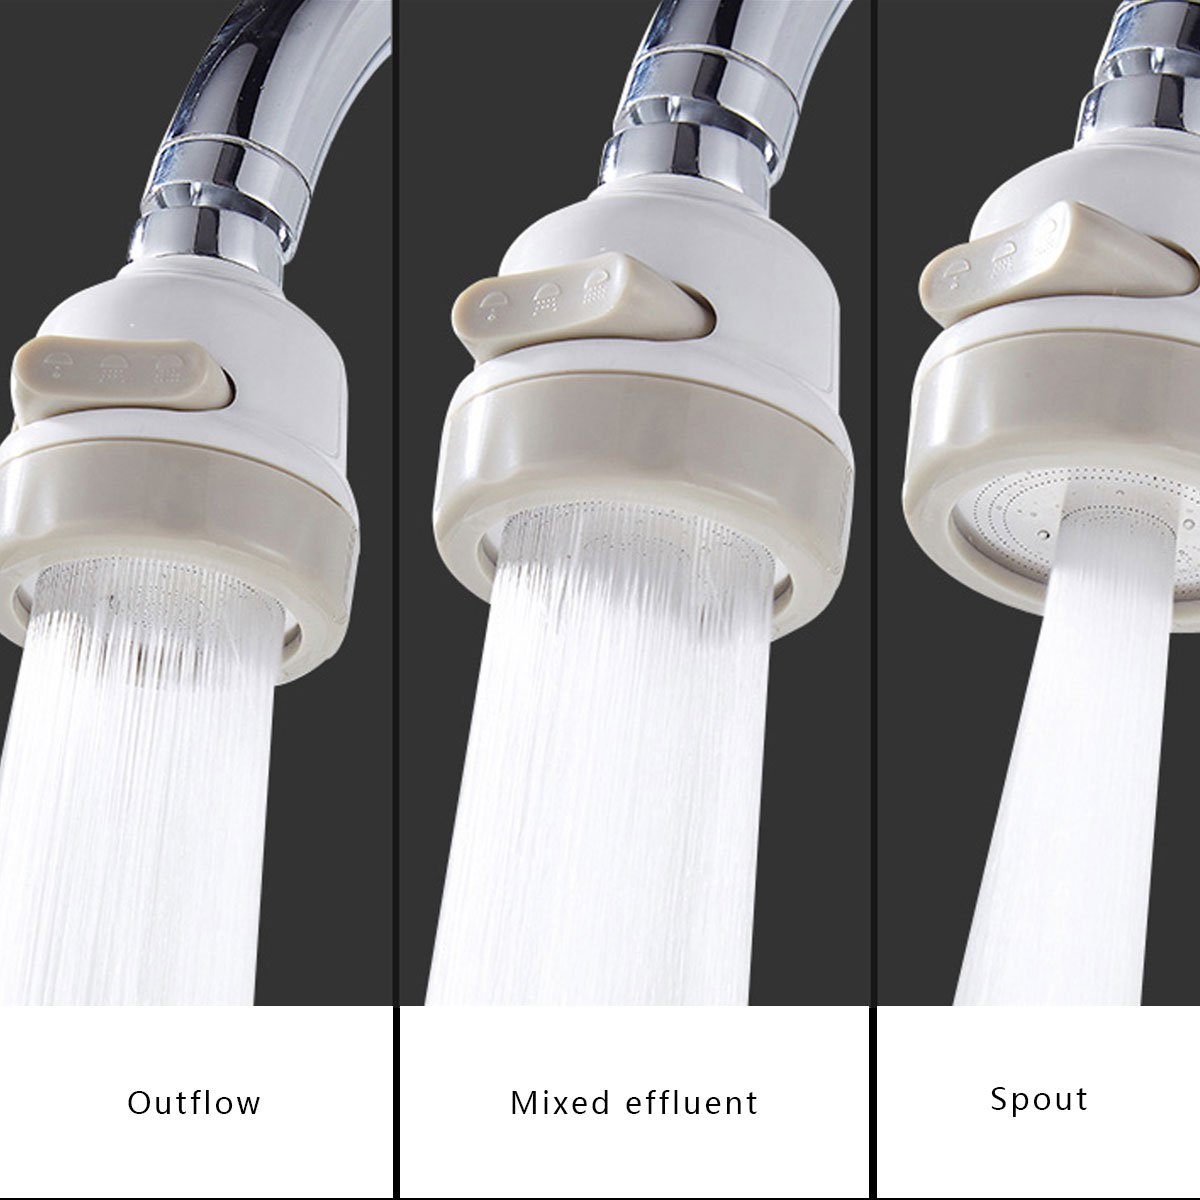 360 Degrees Rotatable Faucet Sprayer Nozzle Water Saving Diffuser 3 Flows Perfect for Kitchen Bathroom